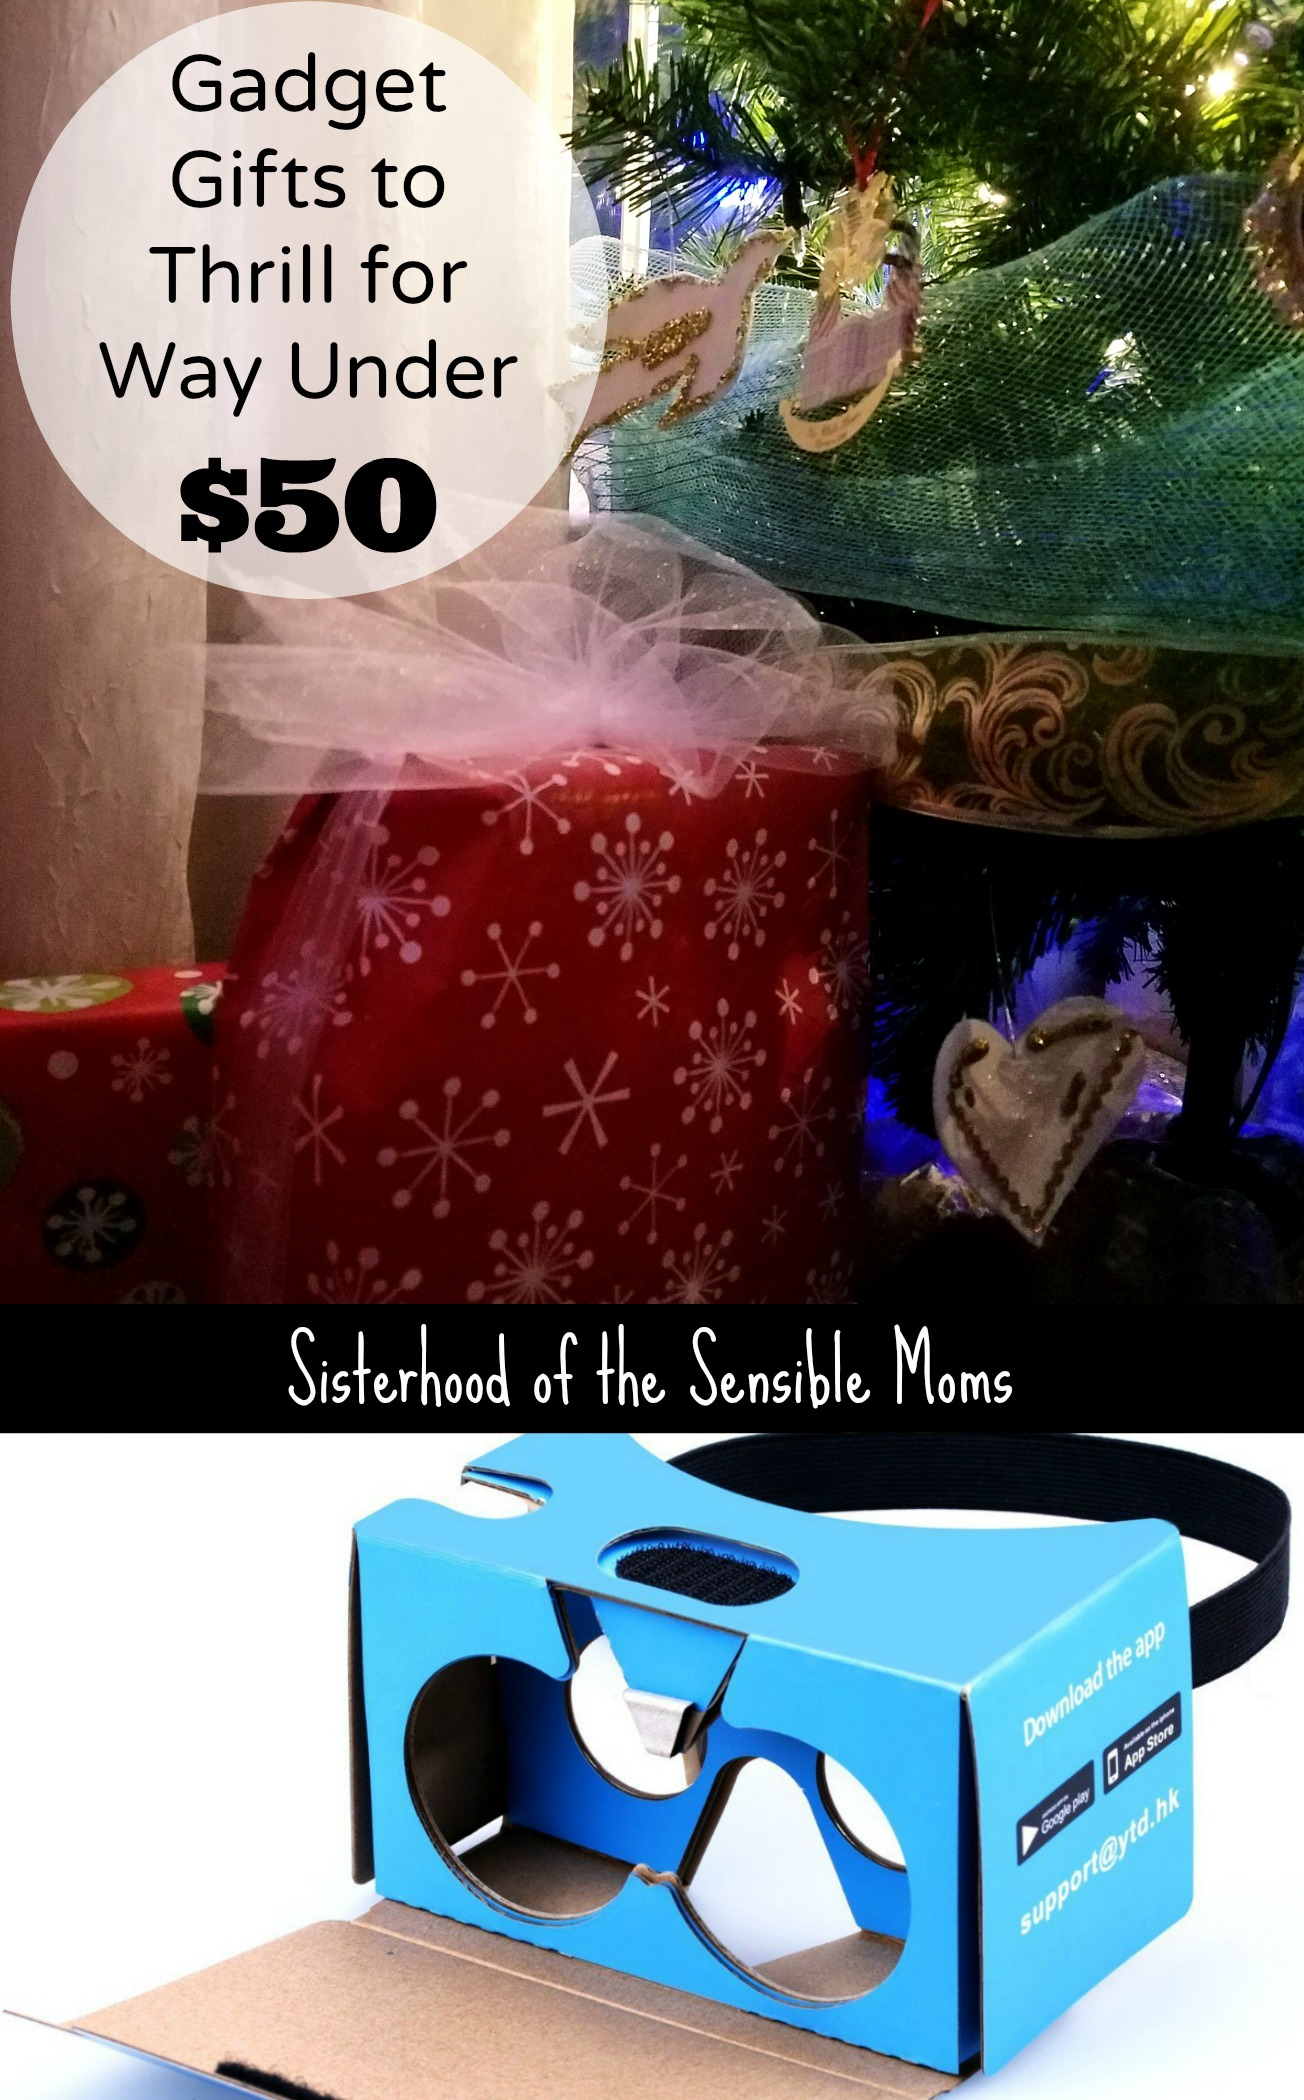 Virtual reality for under $10 anyone? It's holiday gift gathering crunch time. Here are some gadget gifts to thrill for way under $50. | Sisterhood of the Sensible Moms